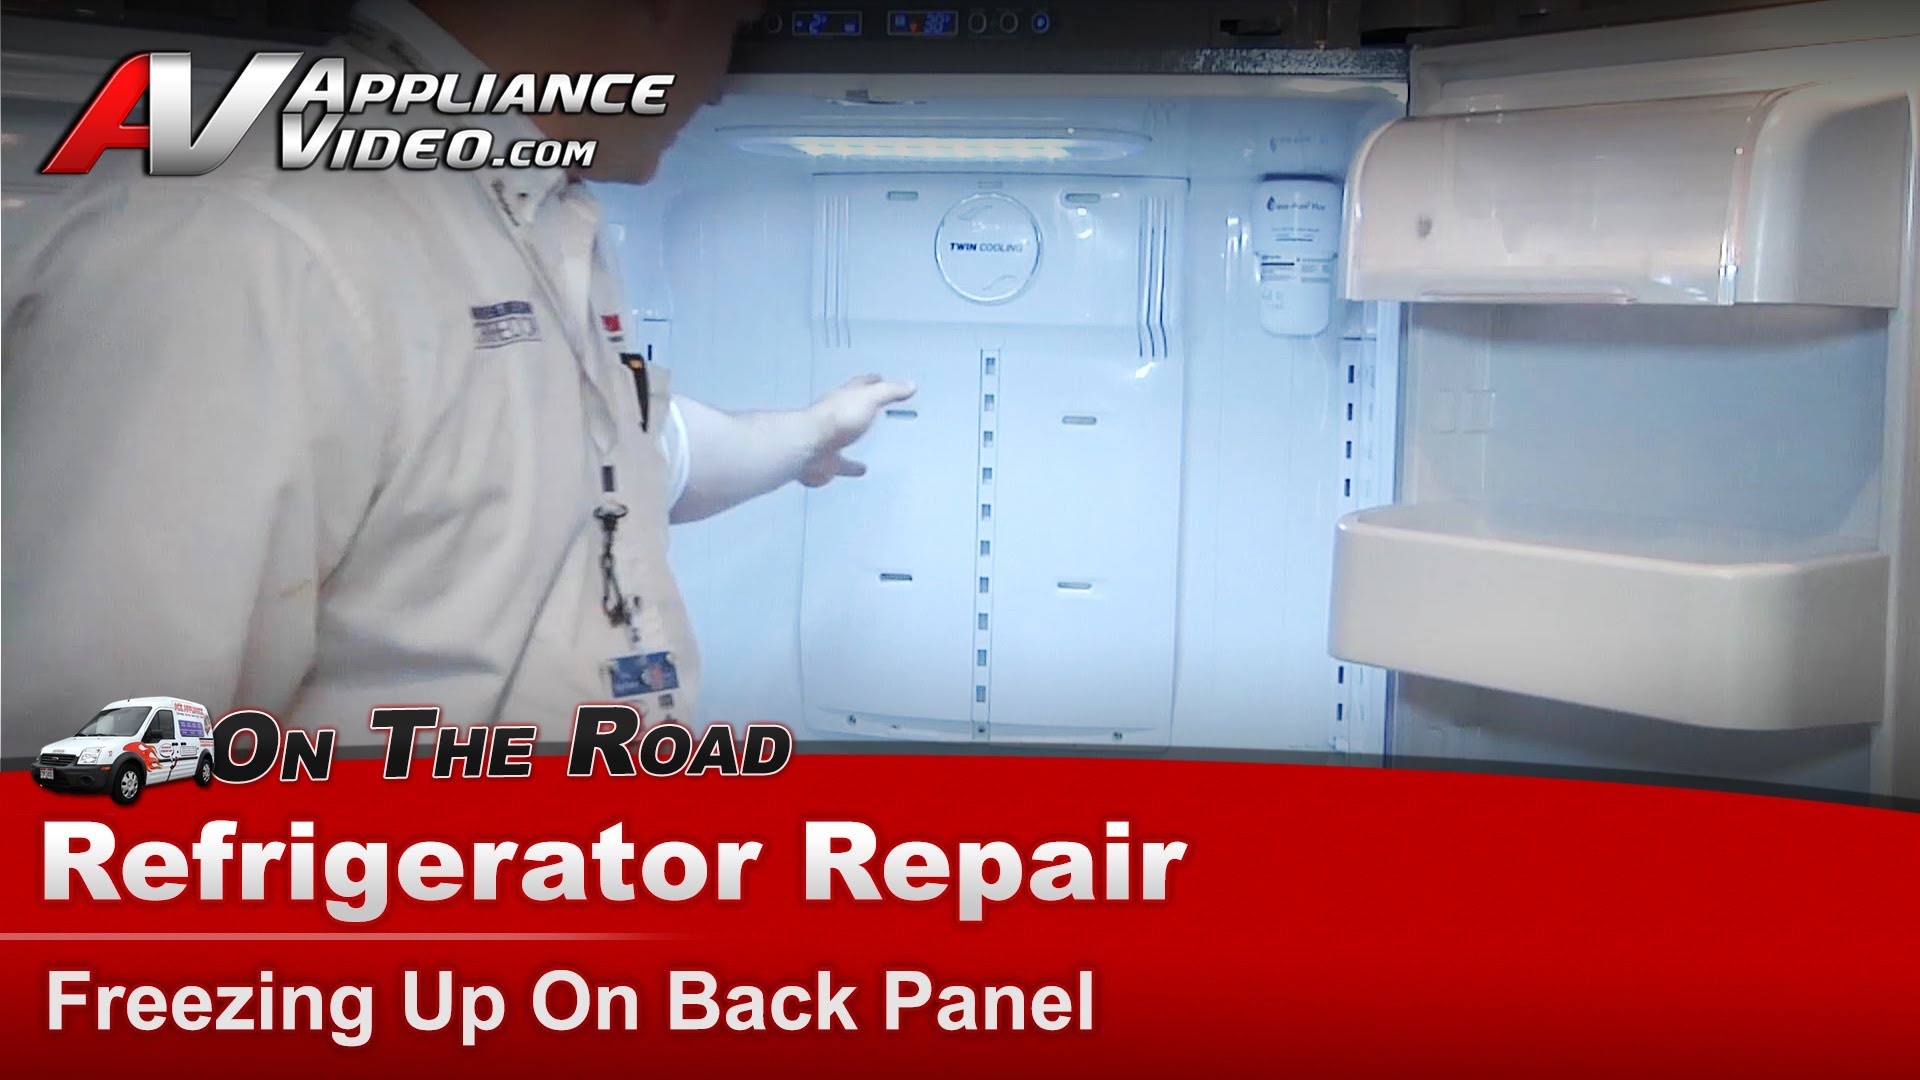 Samsung Rf266aepn Refrigerator Repair Not Cooling Properly Freezing Up On The Back Panel Evaporator And Defrost System Liance Video